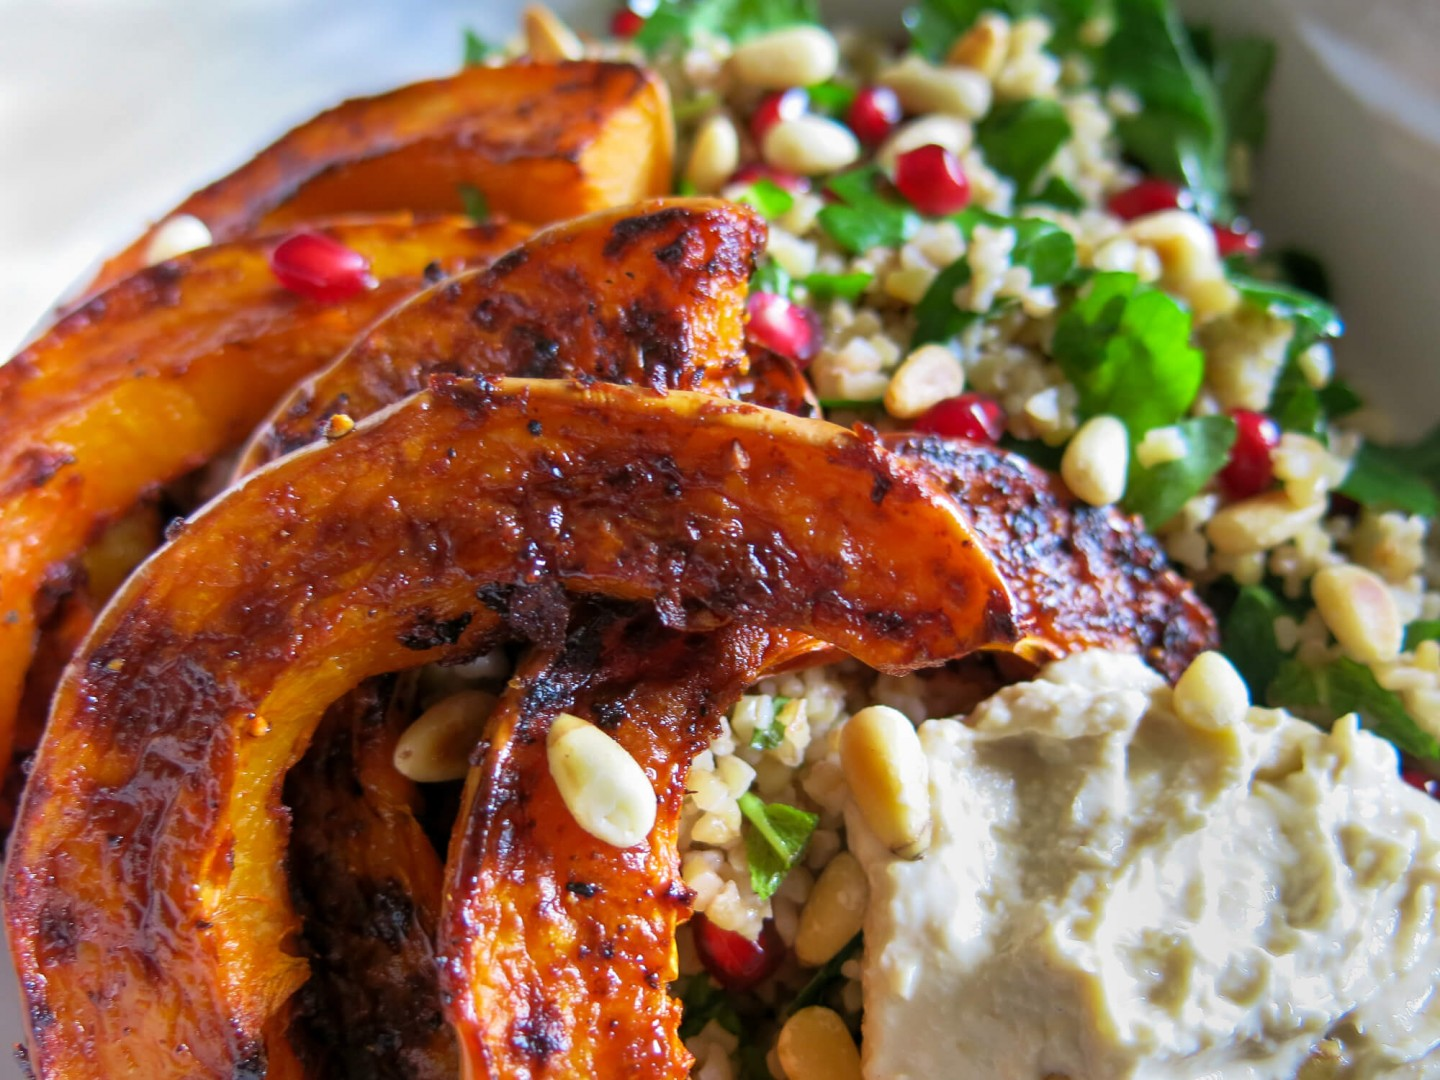 A quick and easy vegetarian salad recipe. Includes butternut squash, bulgar wheat, harrisa, pomegranate and pine nuts.